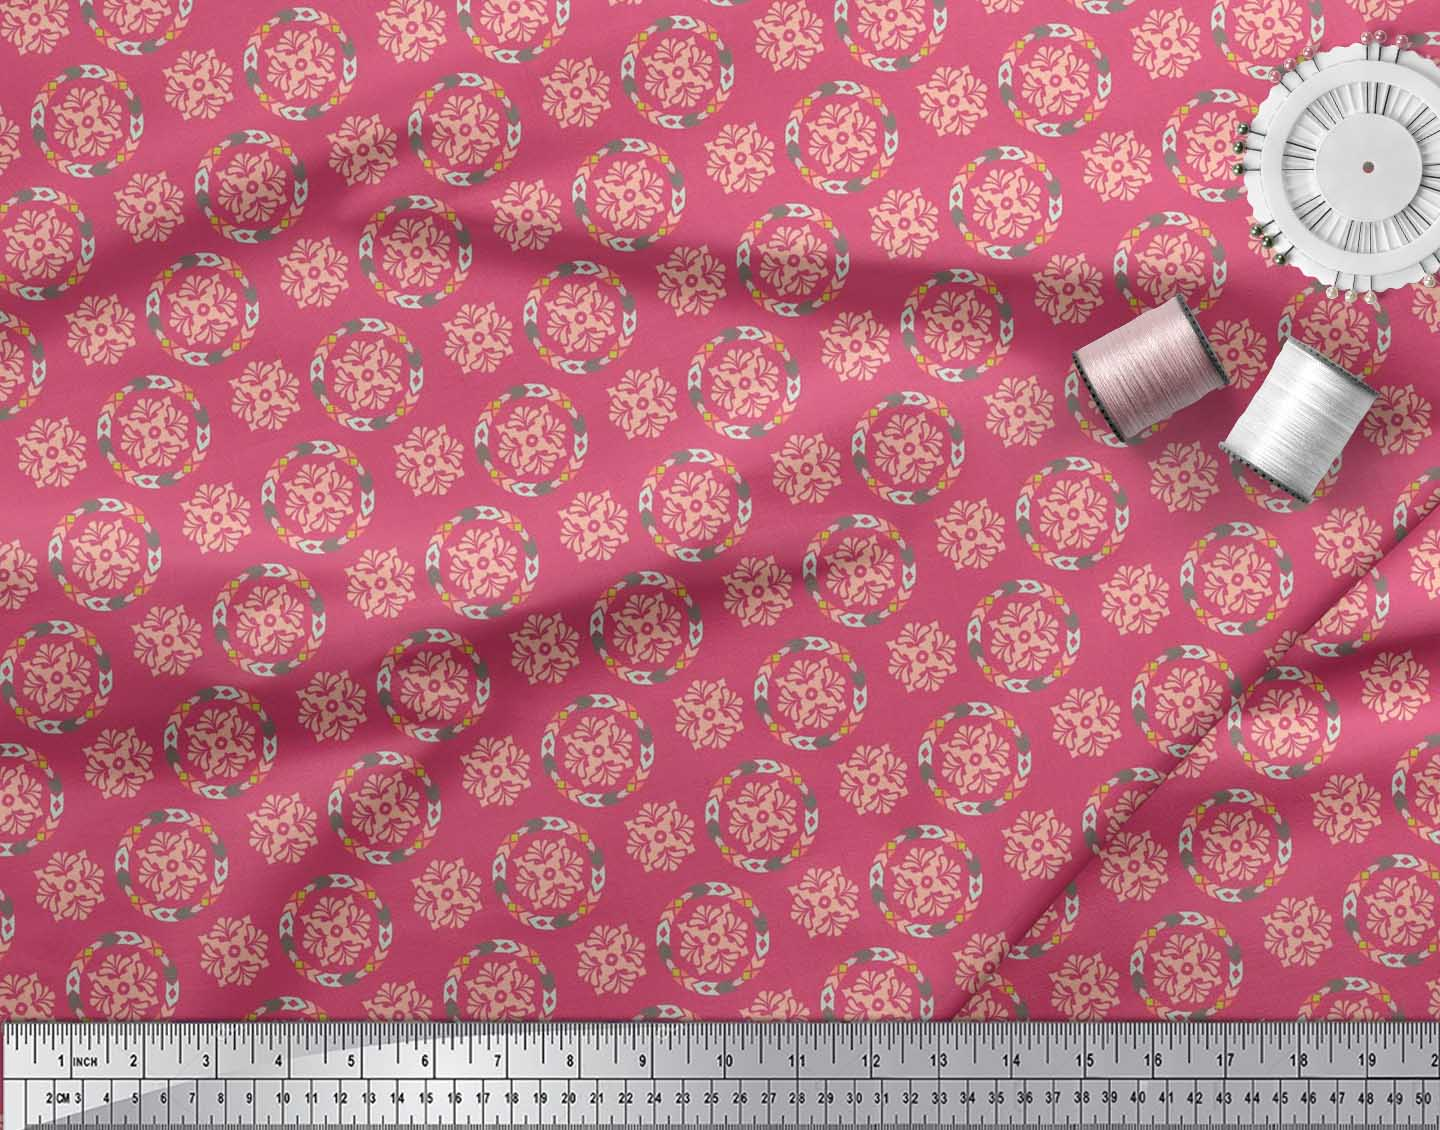 Soimoi-Pink-Cotton-Poplin-Fabric-Artistic-Floral-Decor-Fabric-Printed-3MW thumbnail 3